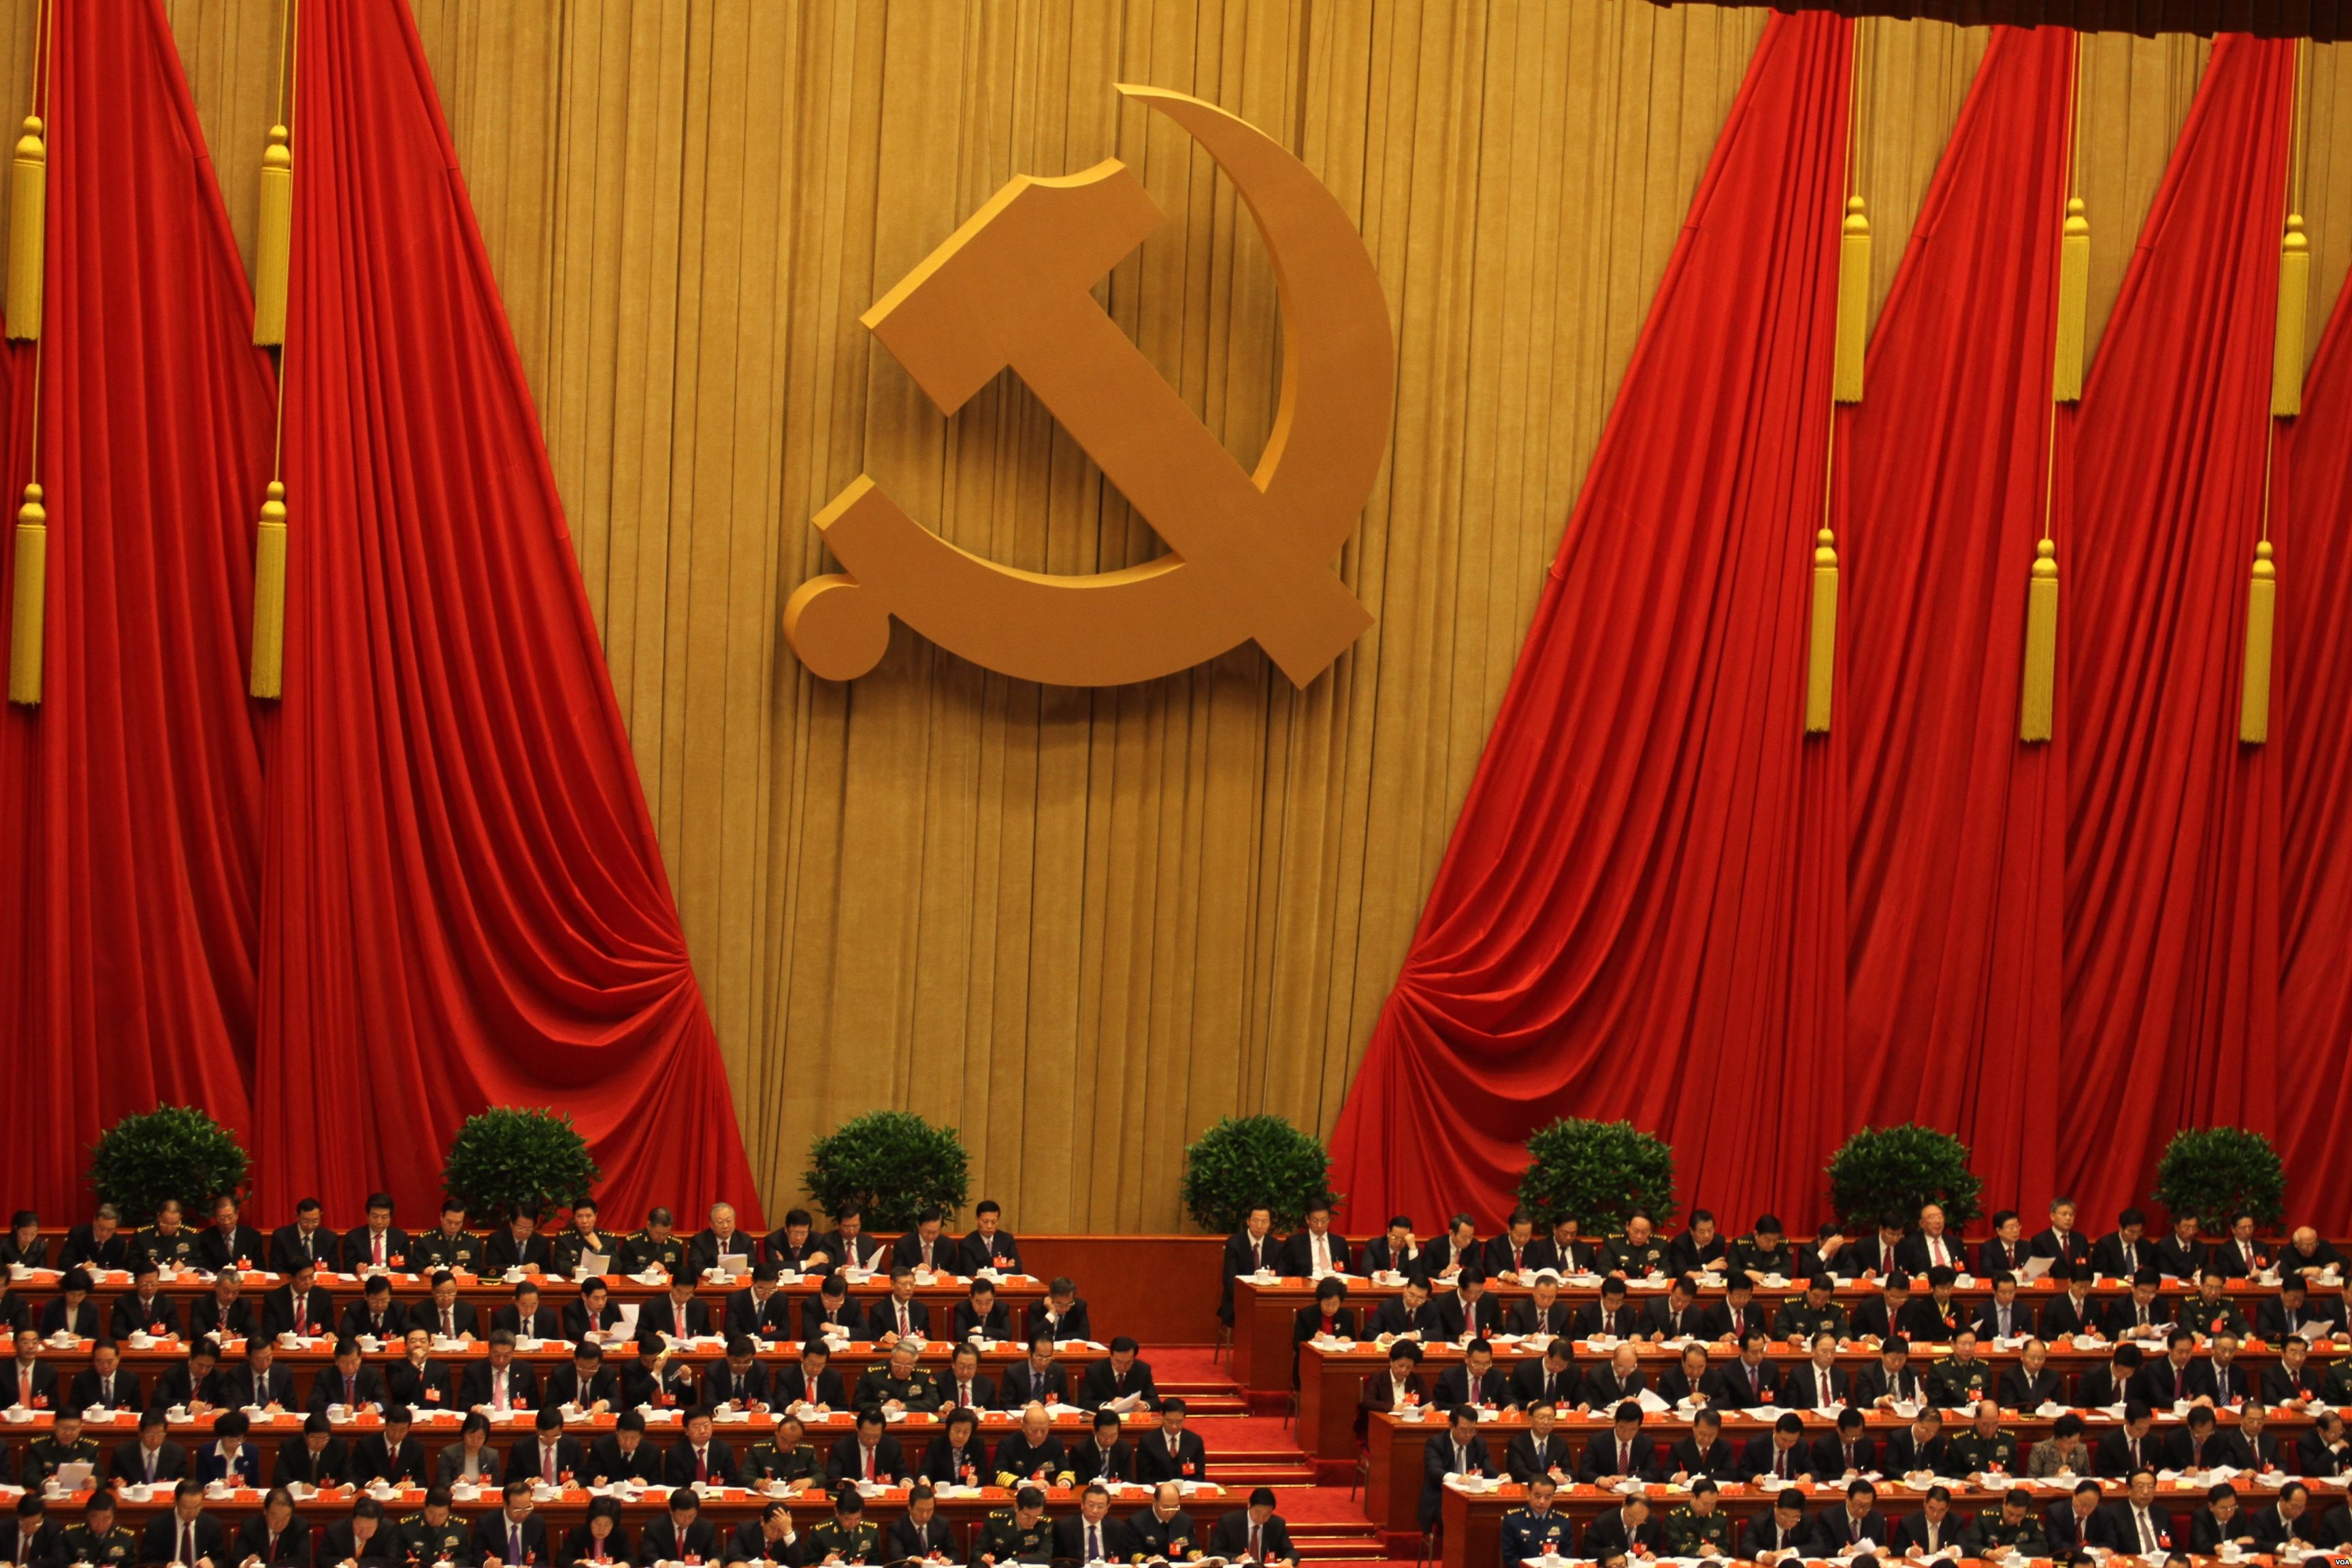 Photograph of 18th National Congress of the Communist Party of China